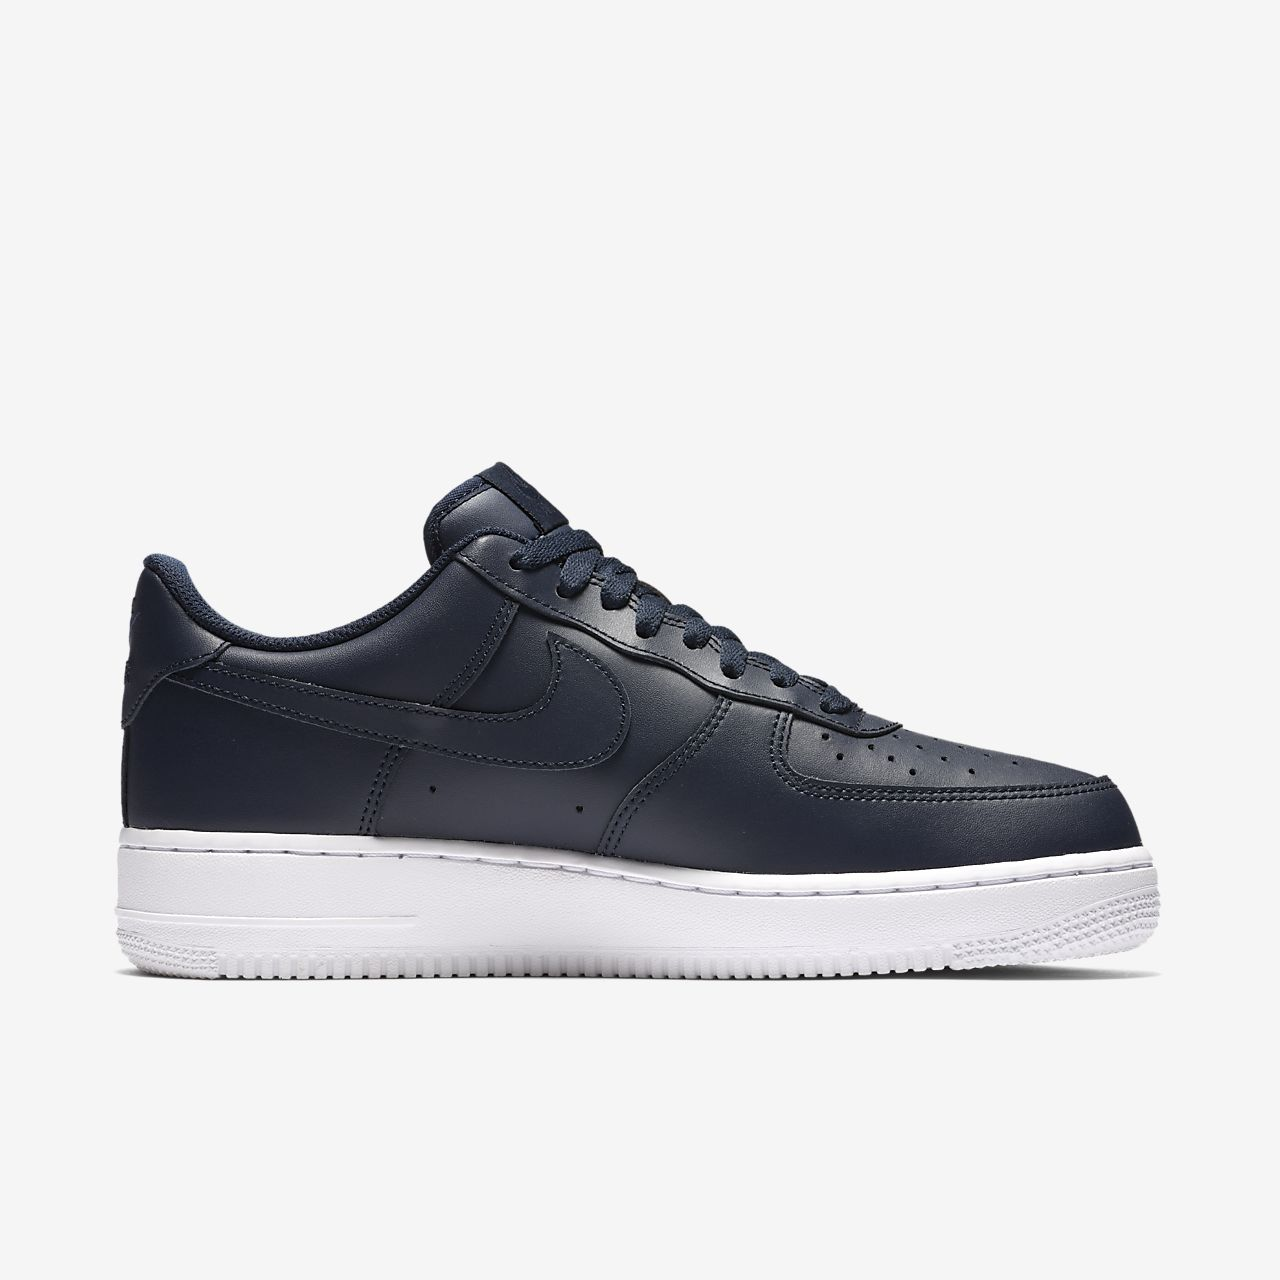 hot sale online 70bdd 7703d ... Nike Air Force 1 07 Men s Shoe